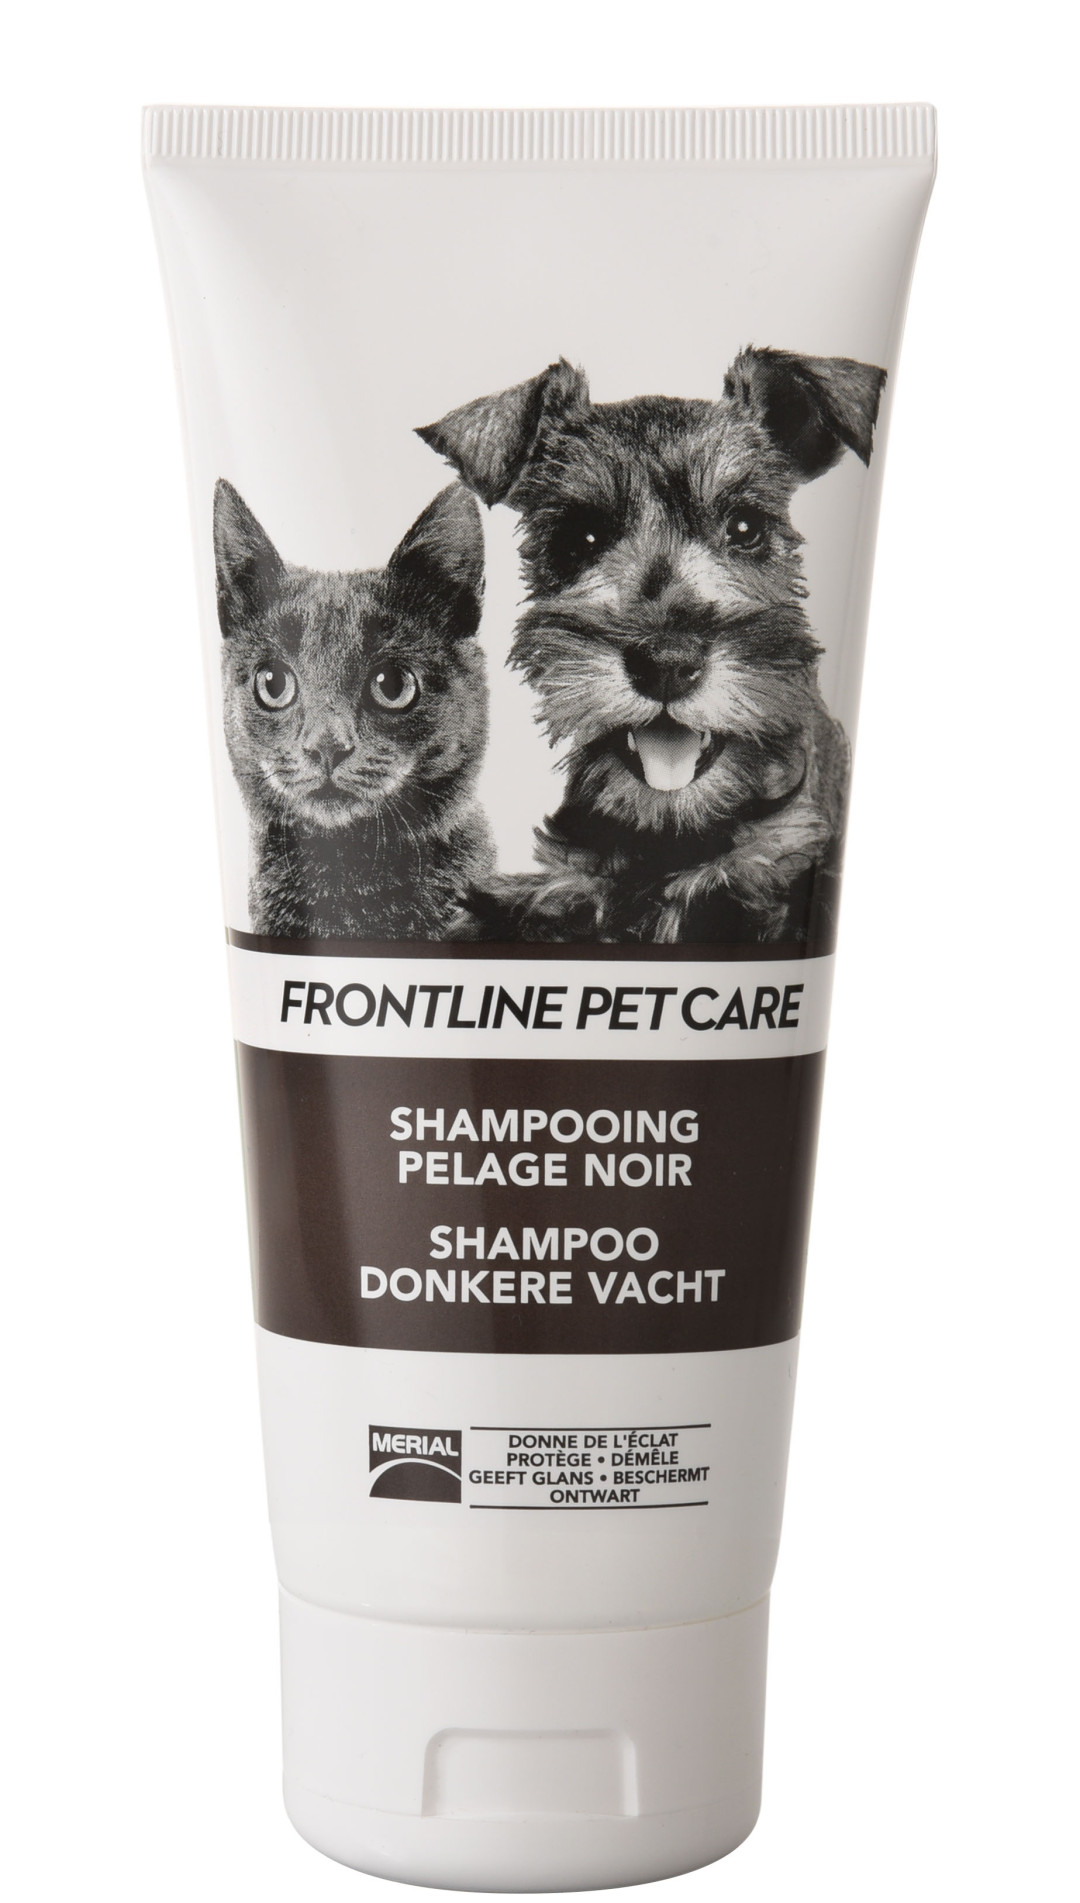 Frontline Pet Care shampoo Donkere Vacht 200 ml